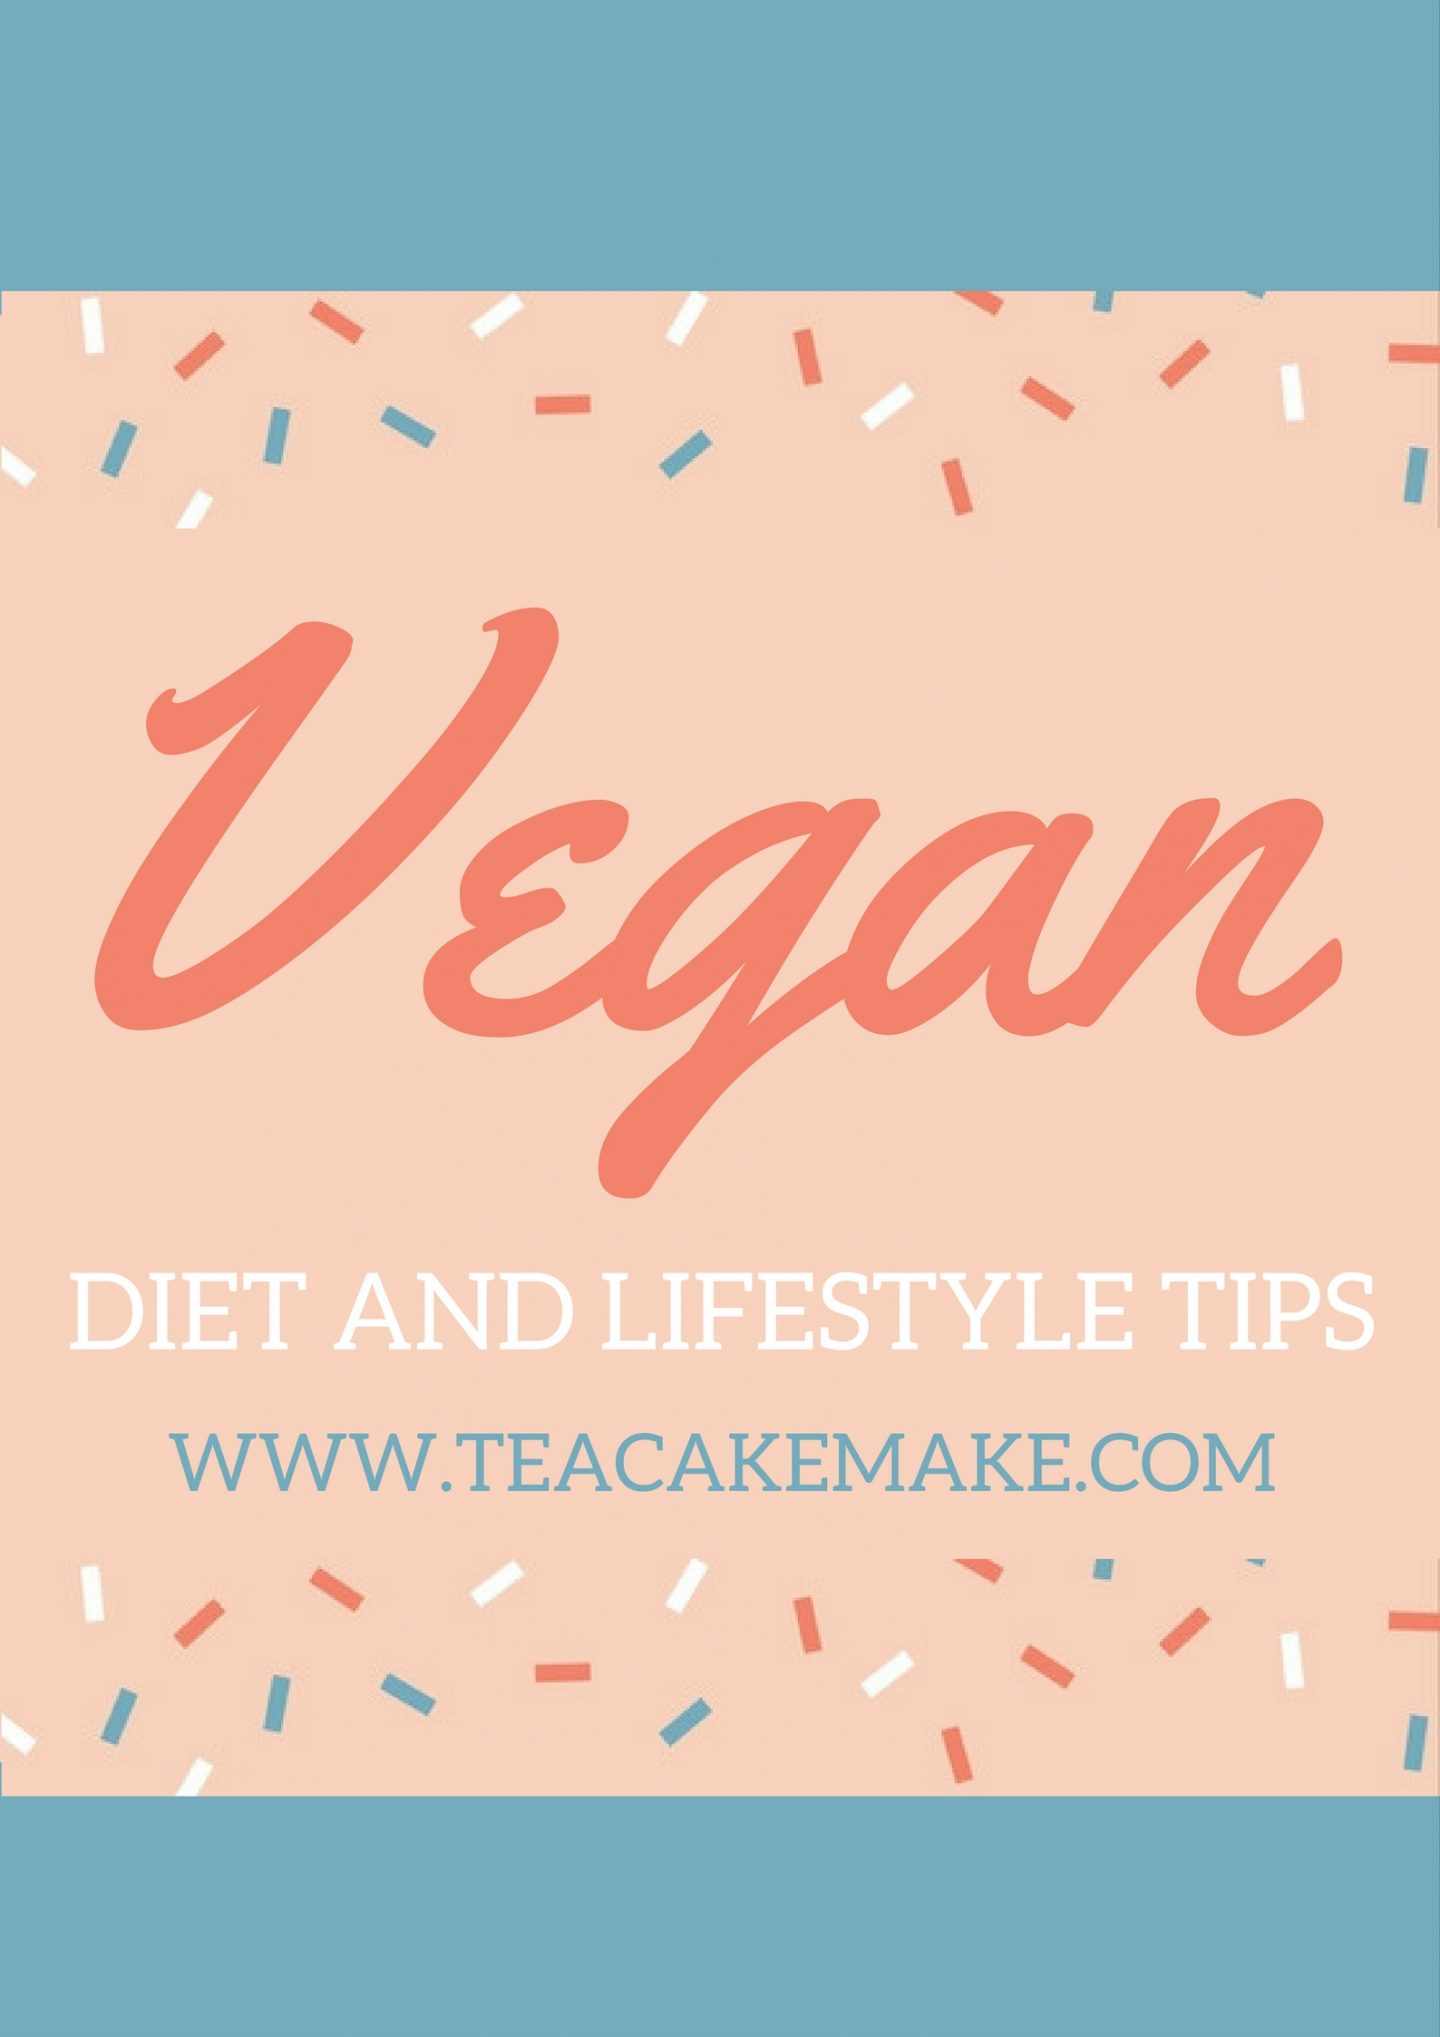 Tips and Tricks for a Vegan Diet and Lifestyle 1